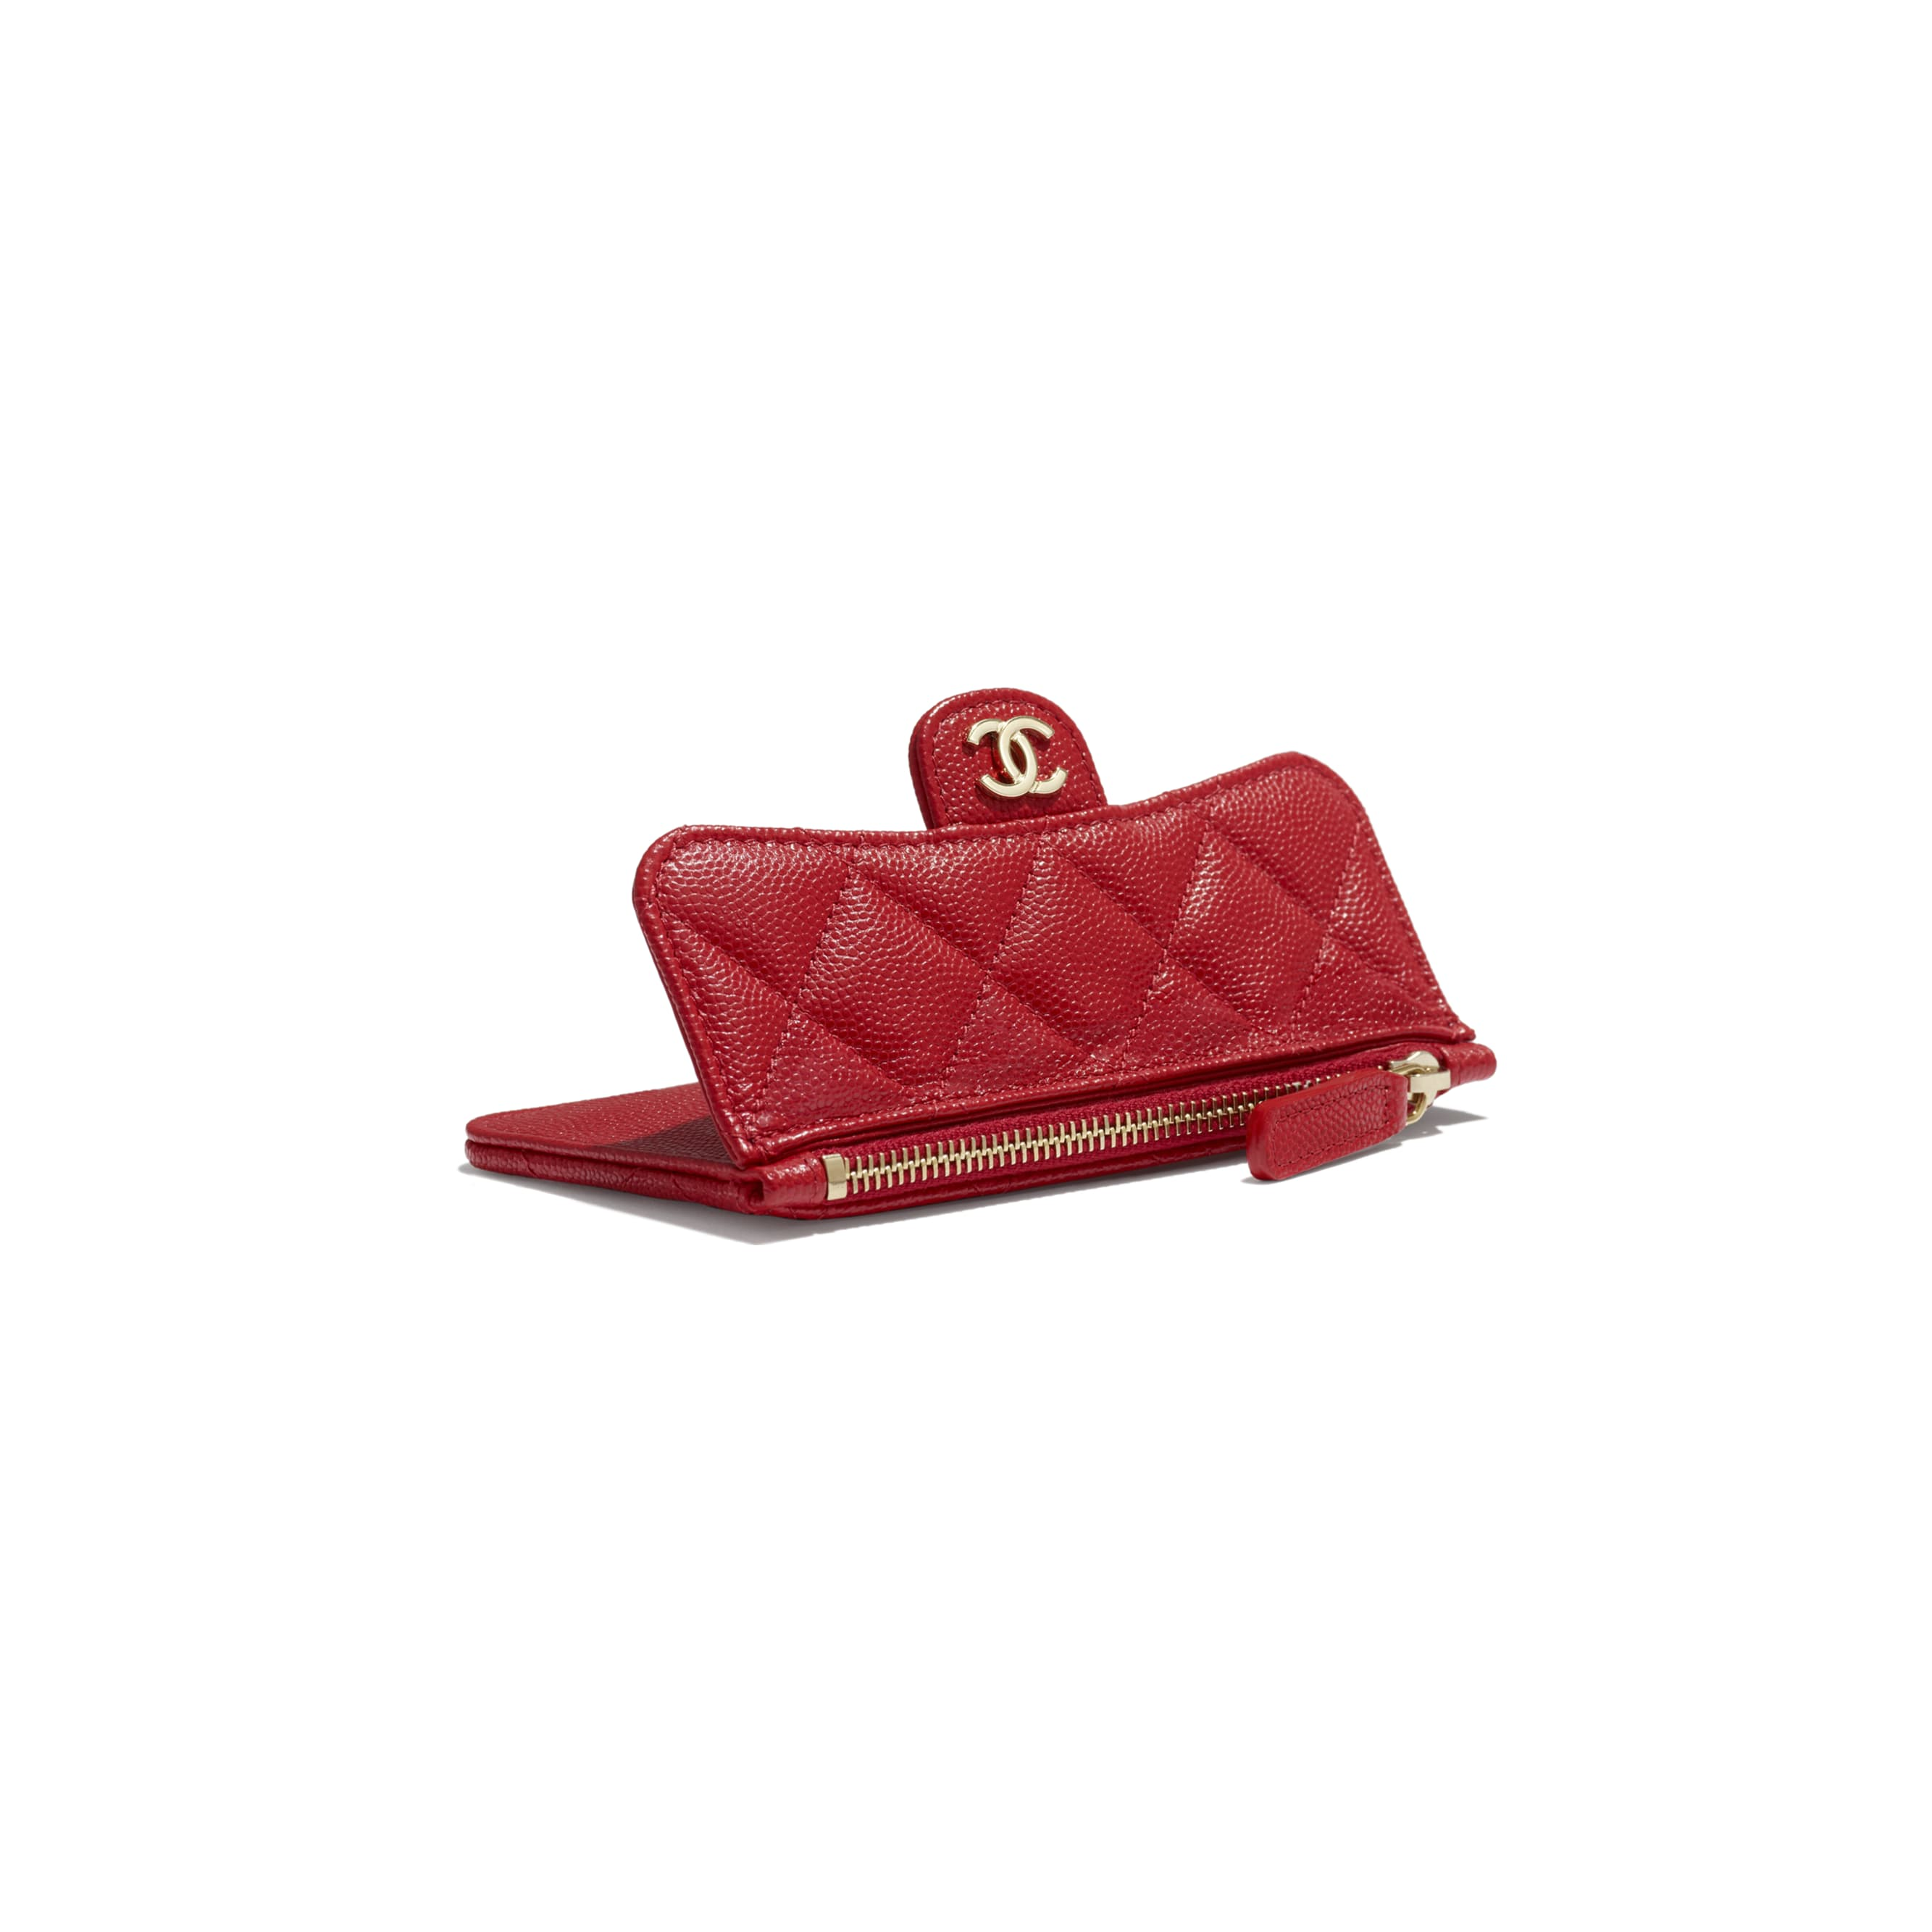 Classic Card Holder - Red - Grained Calfskin & Gold-Tone Metal - Extra view - see standard sized version